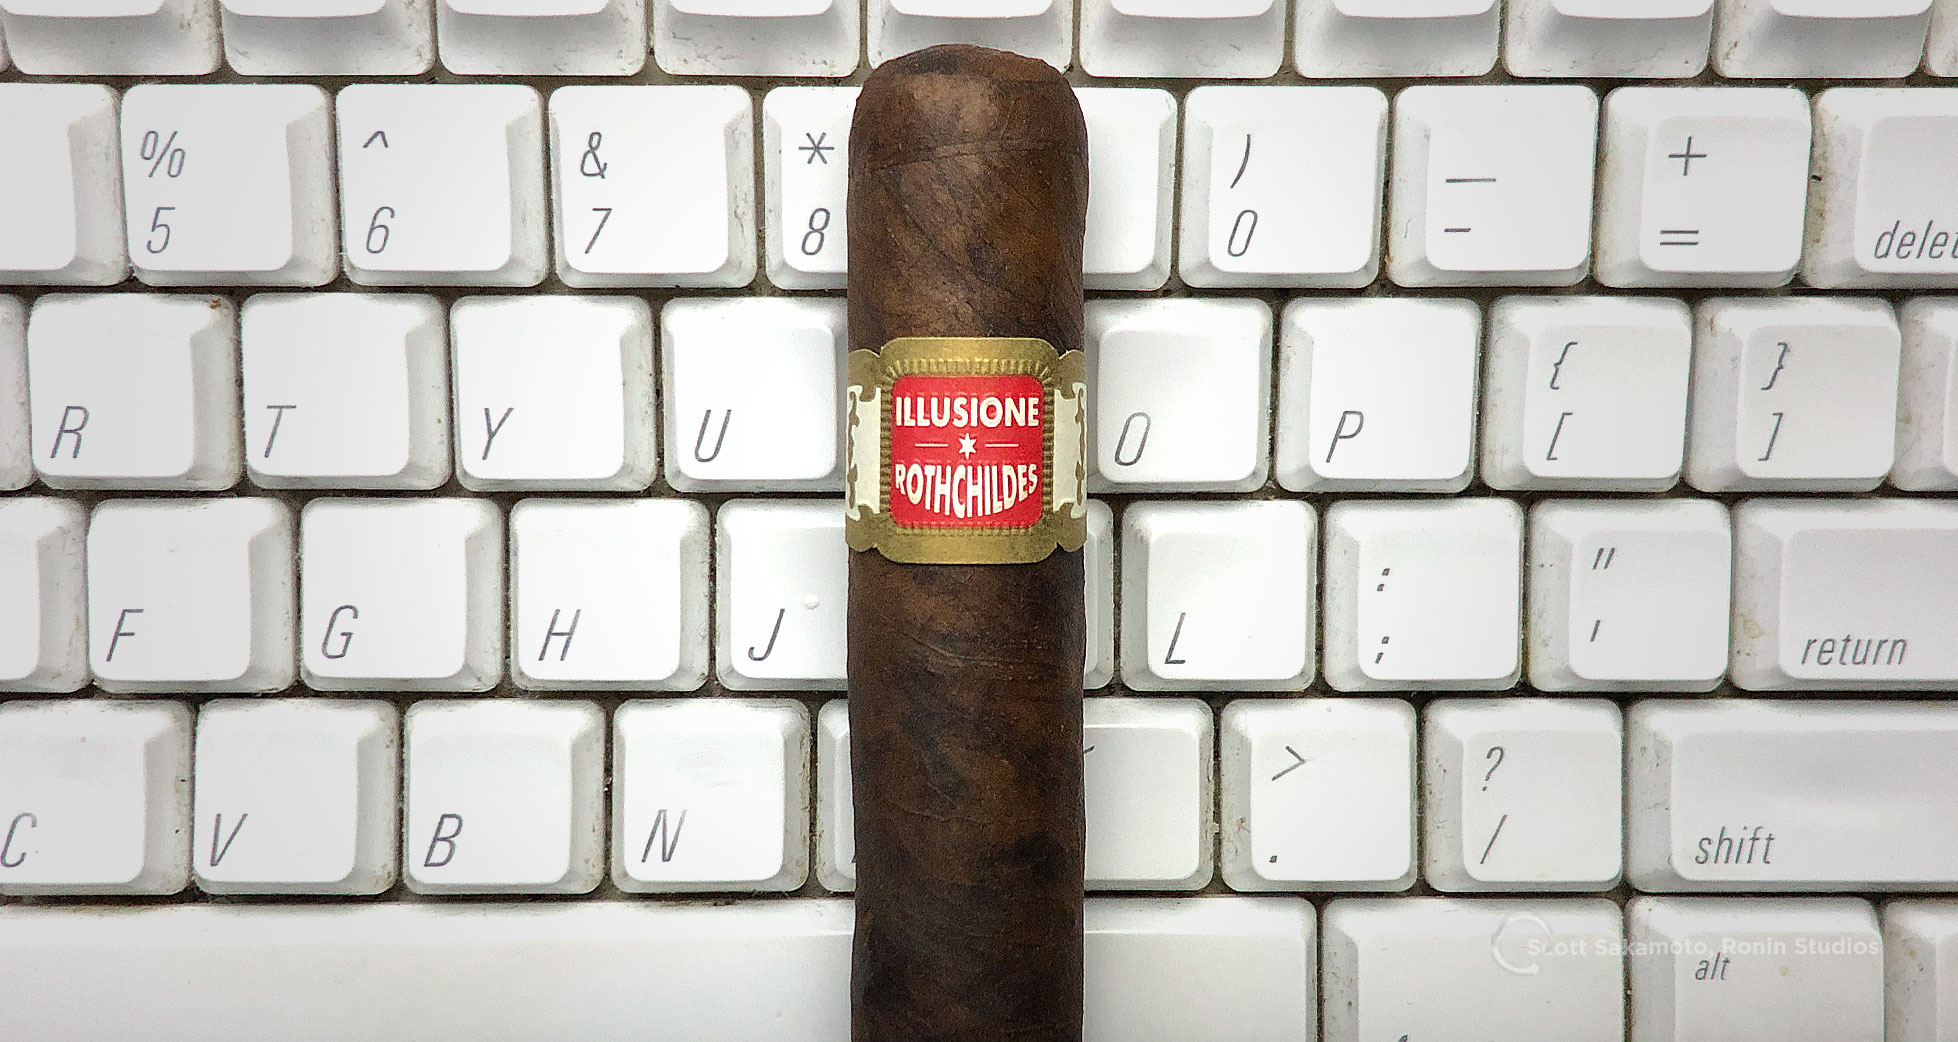 Illusione Cigars, llusione, Maduro, Mexican, Nicaraguan, r, Rothchildes, San Andres